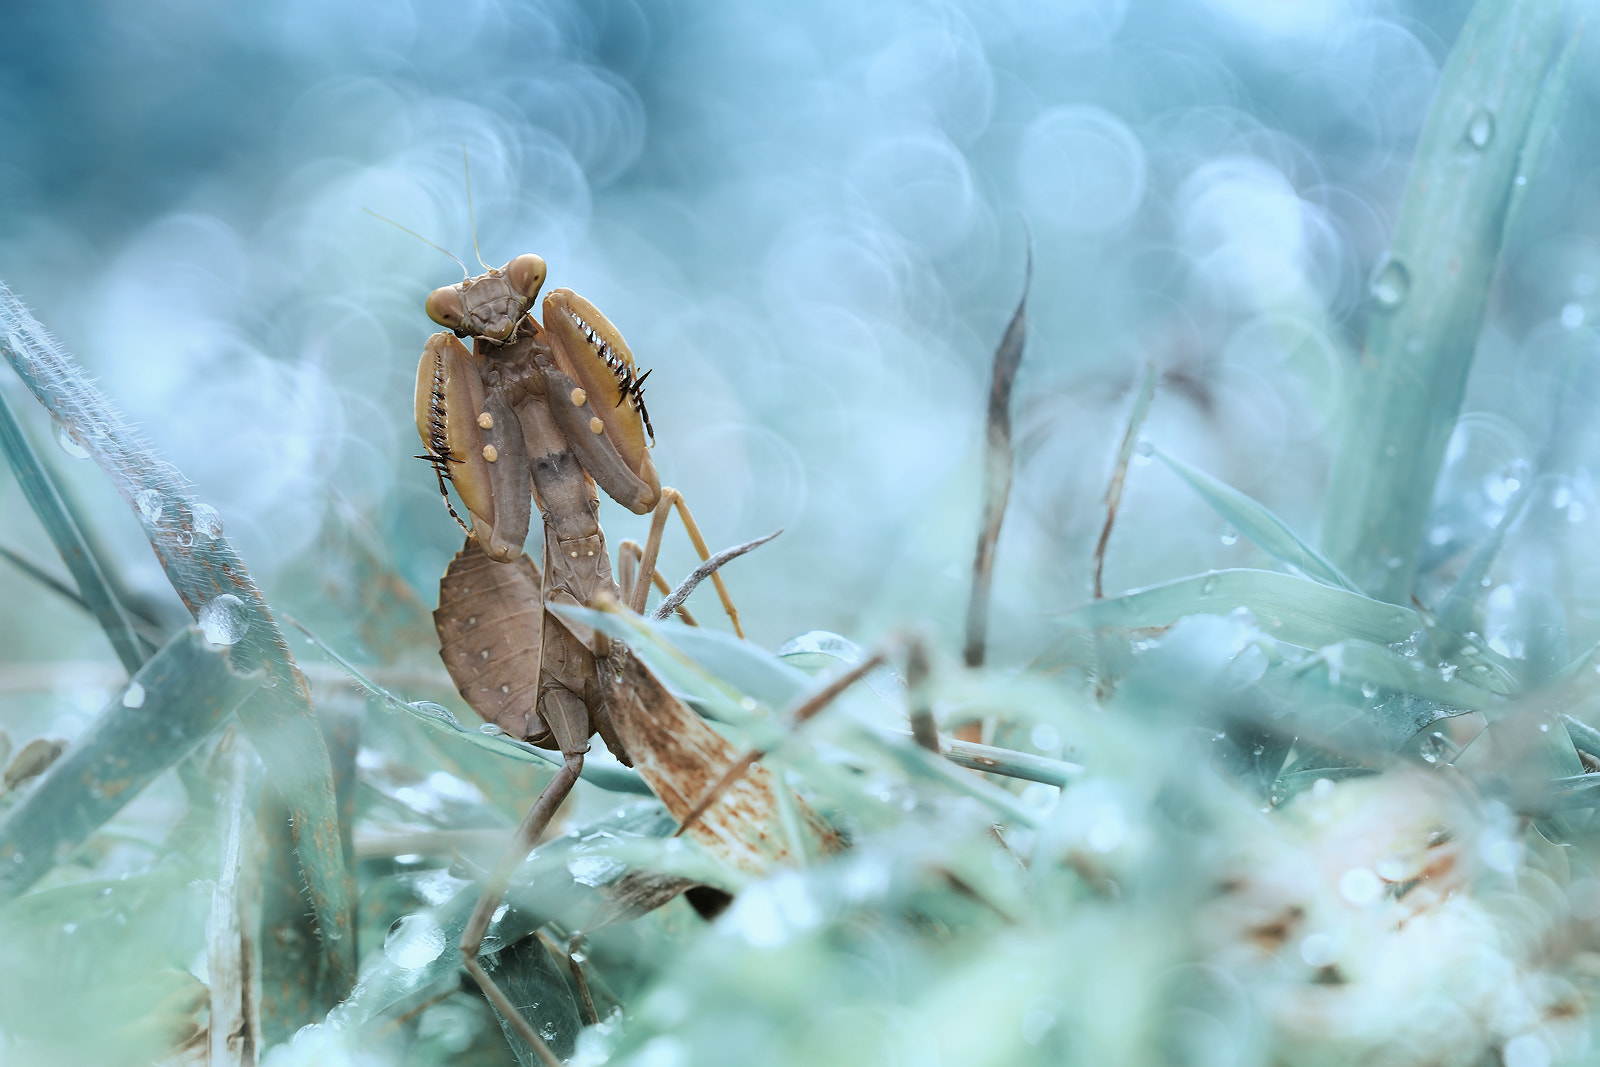 Photograph The Boxer Mantid by Donald Jusa on 500px